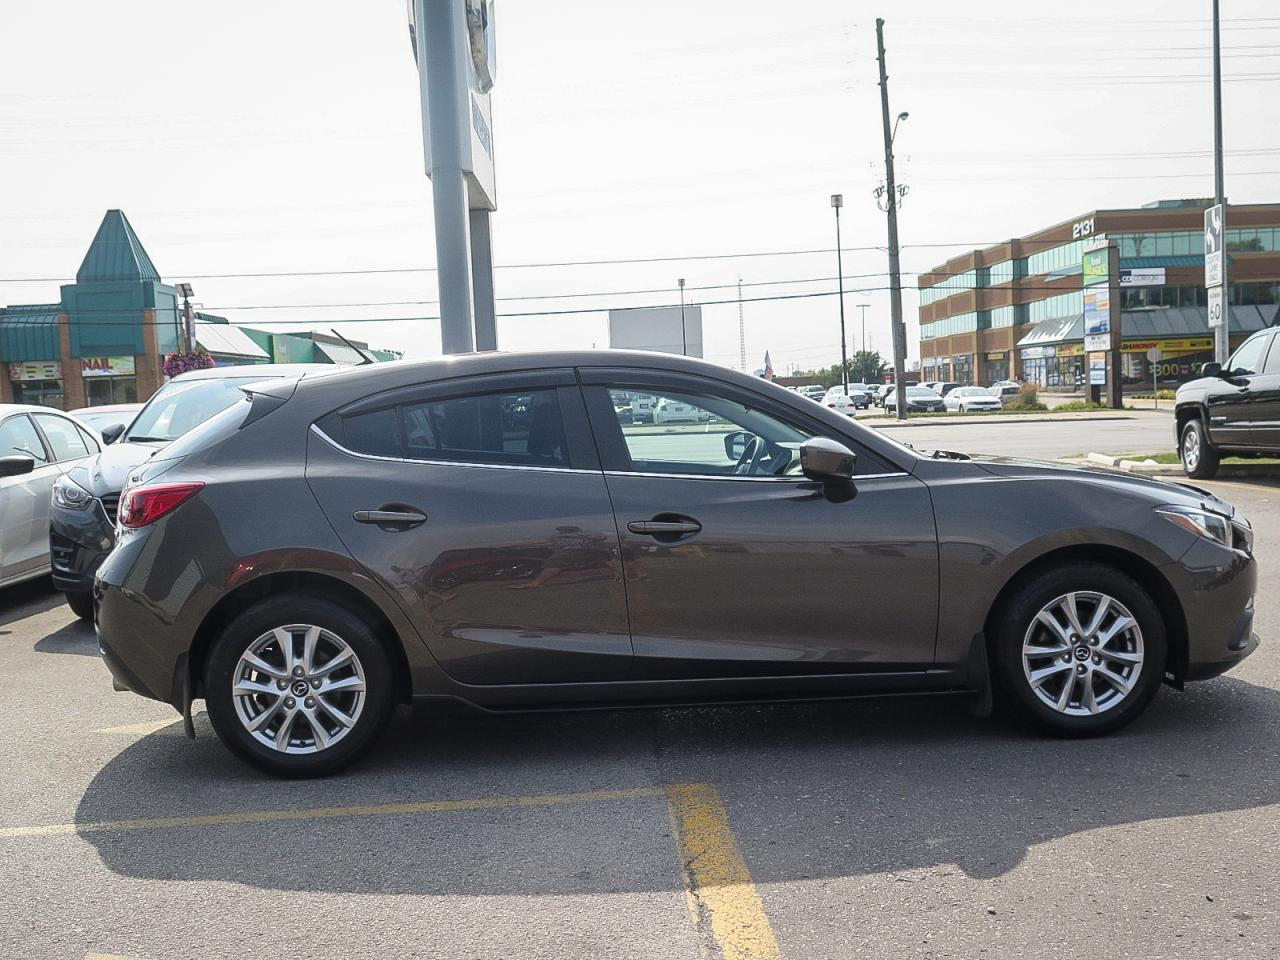 used 2014 mazda mazda3 gs new brakes all around balance of 7 years mazda warranty finance 0. Black Bedroom Furniture Sets. Home Design Ideas